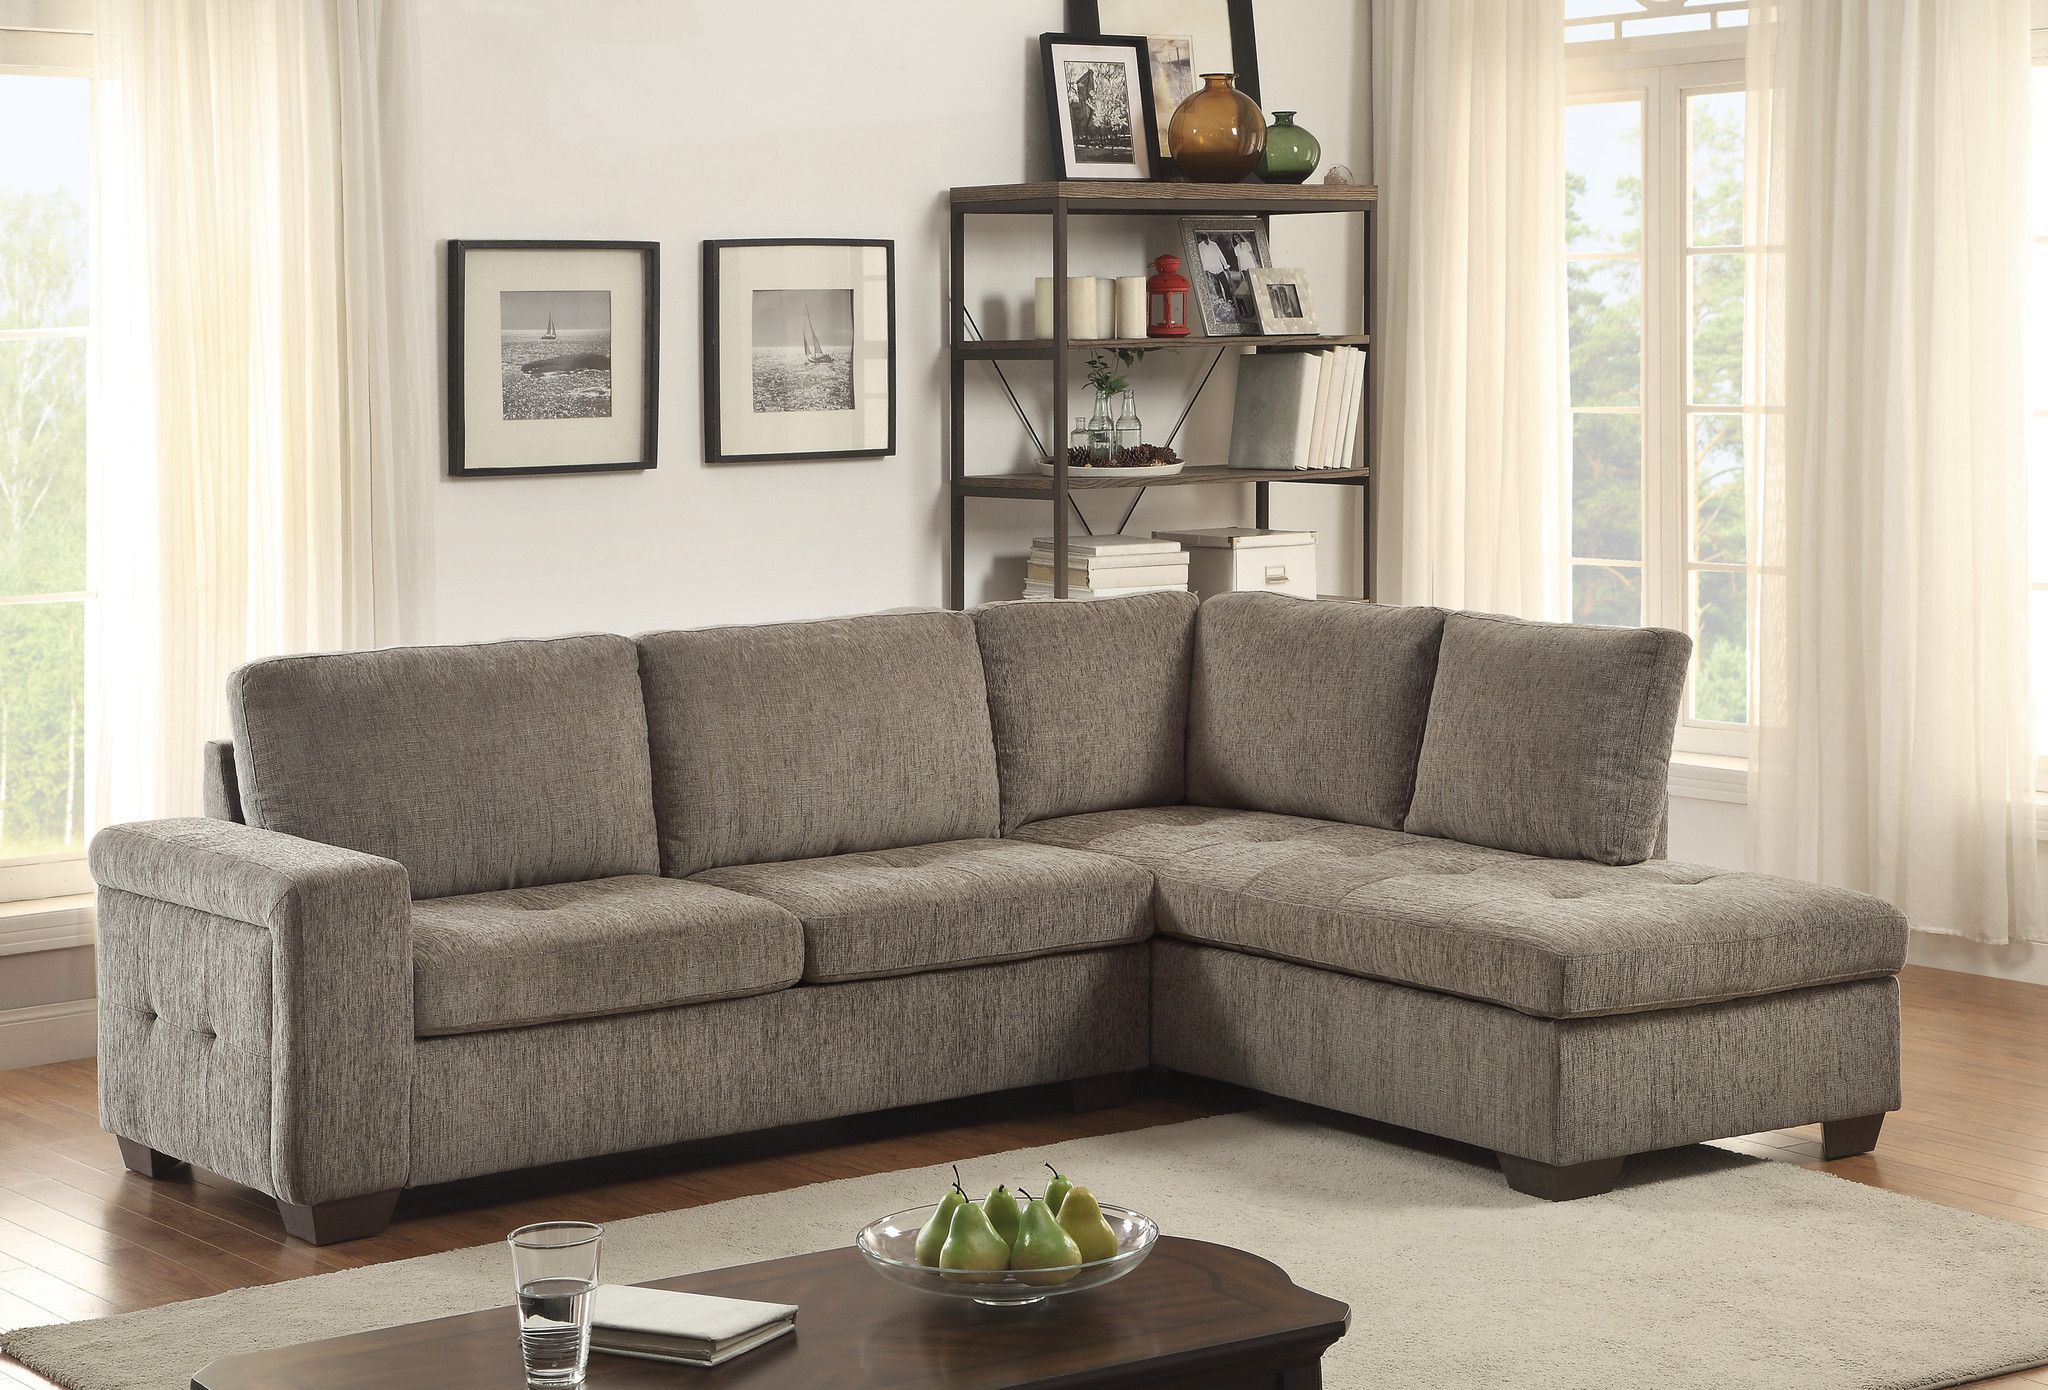 Sofa Frame Creaks Indiamart Sectional Sleeper With Chaise Chair Collection